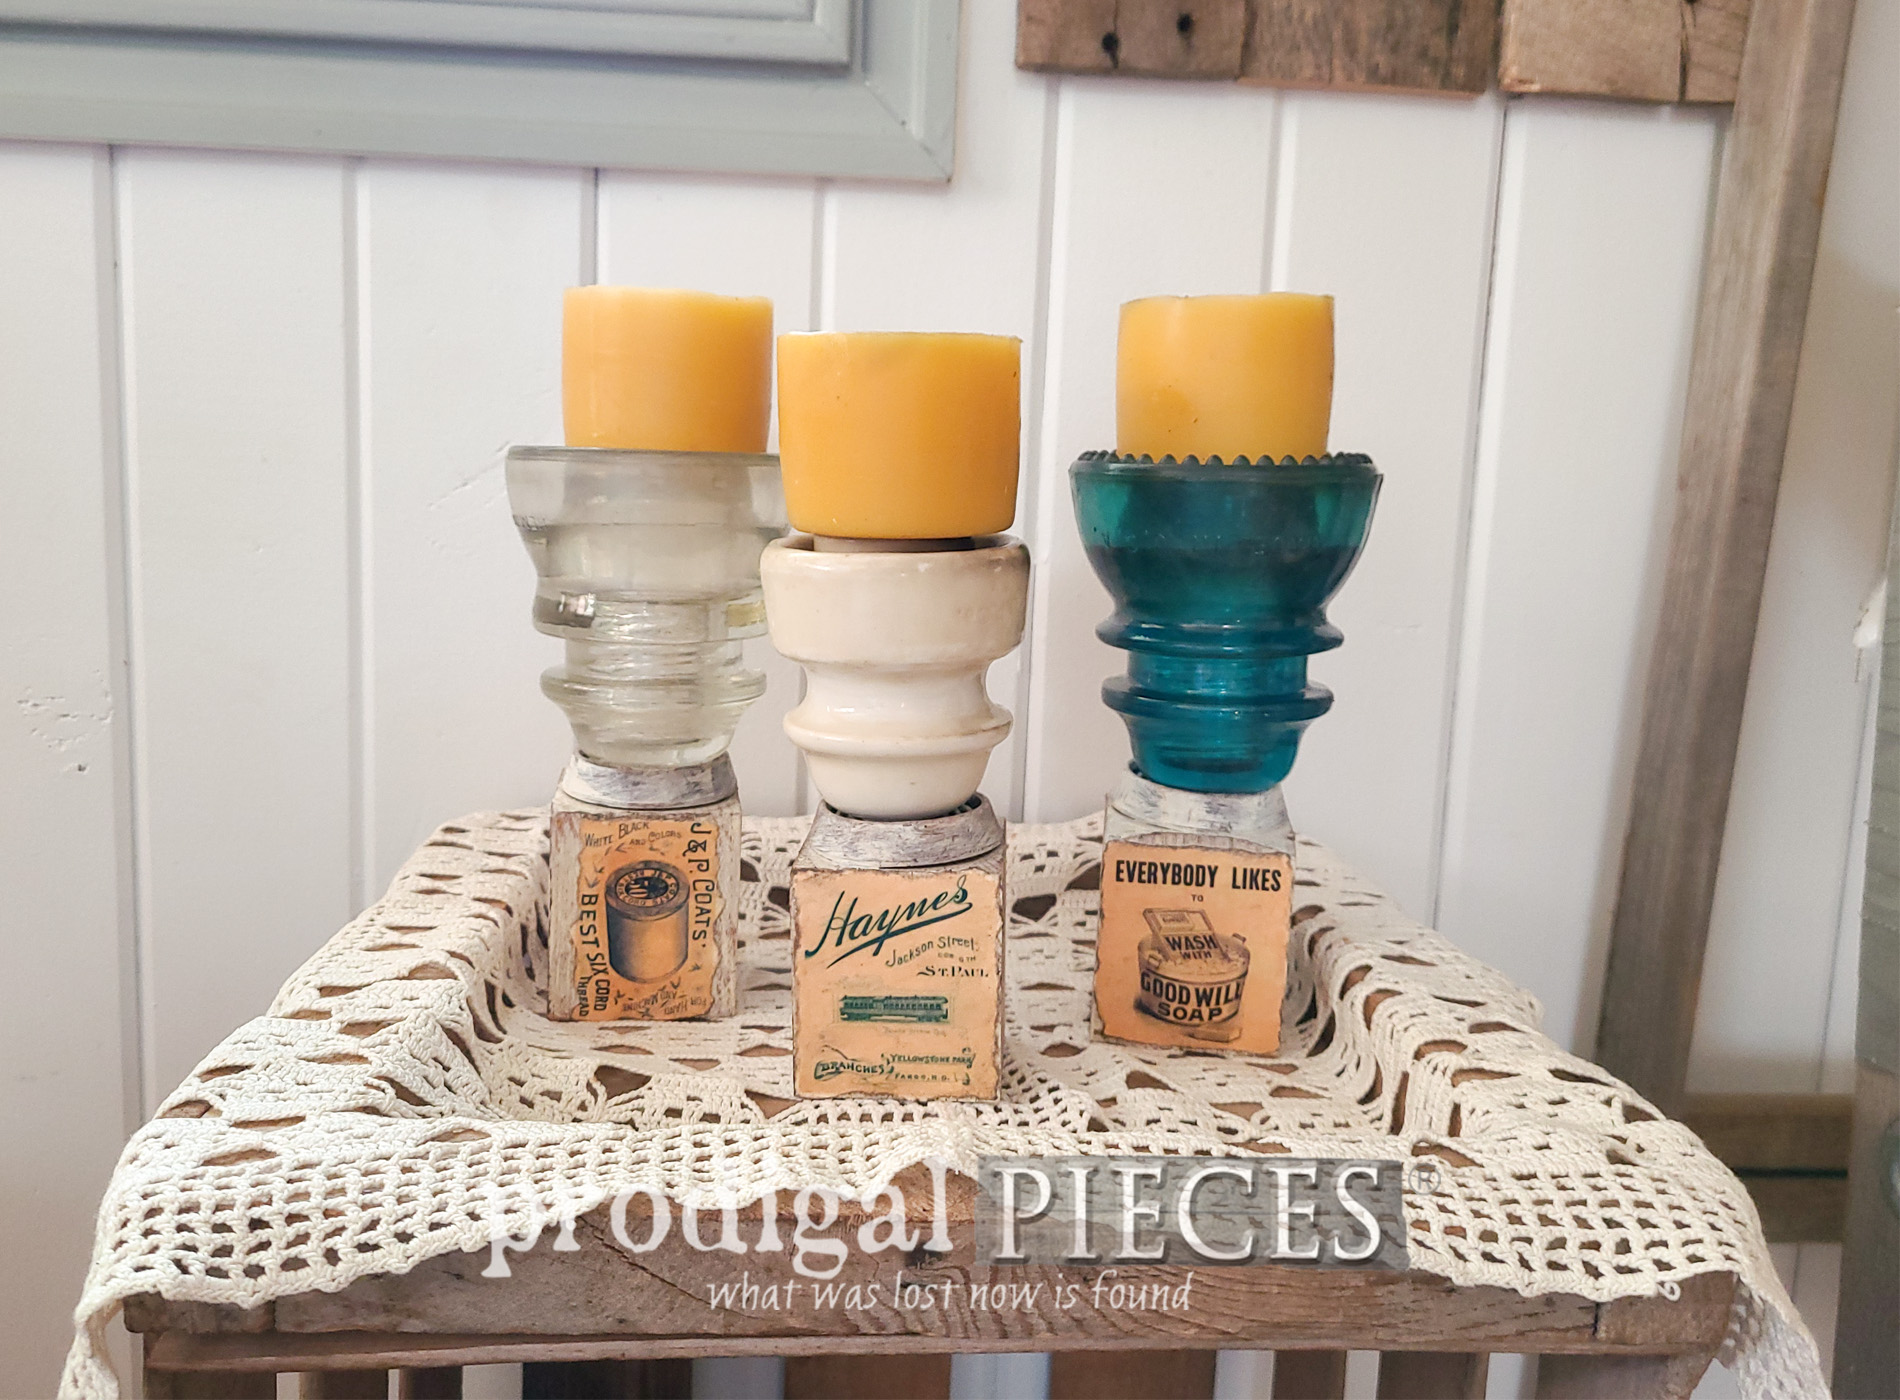 Featured Upcycled Antique Insulator Candle Holders by Larissa of Prodigal Pieces | prodigalpieces.com #prodigalpieces #diy #farmhouse #reclaimed #salvage #art #candles